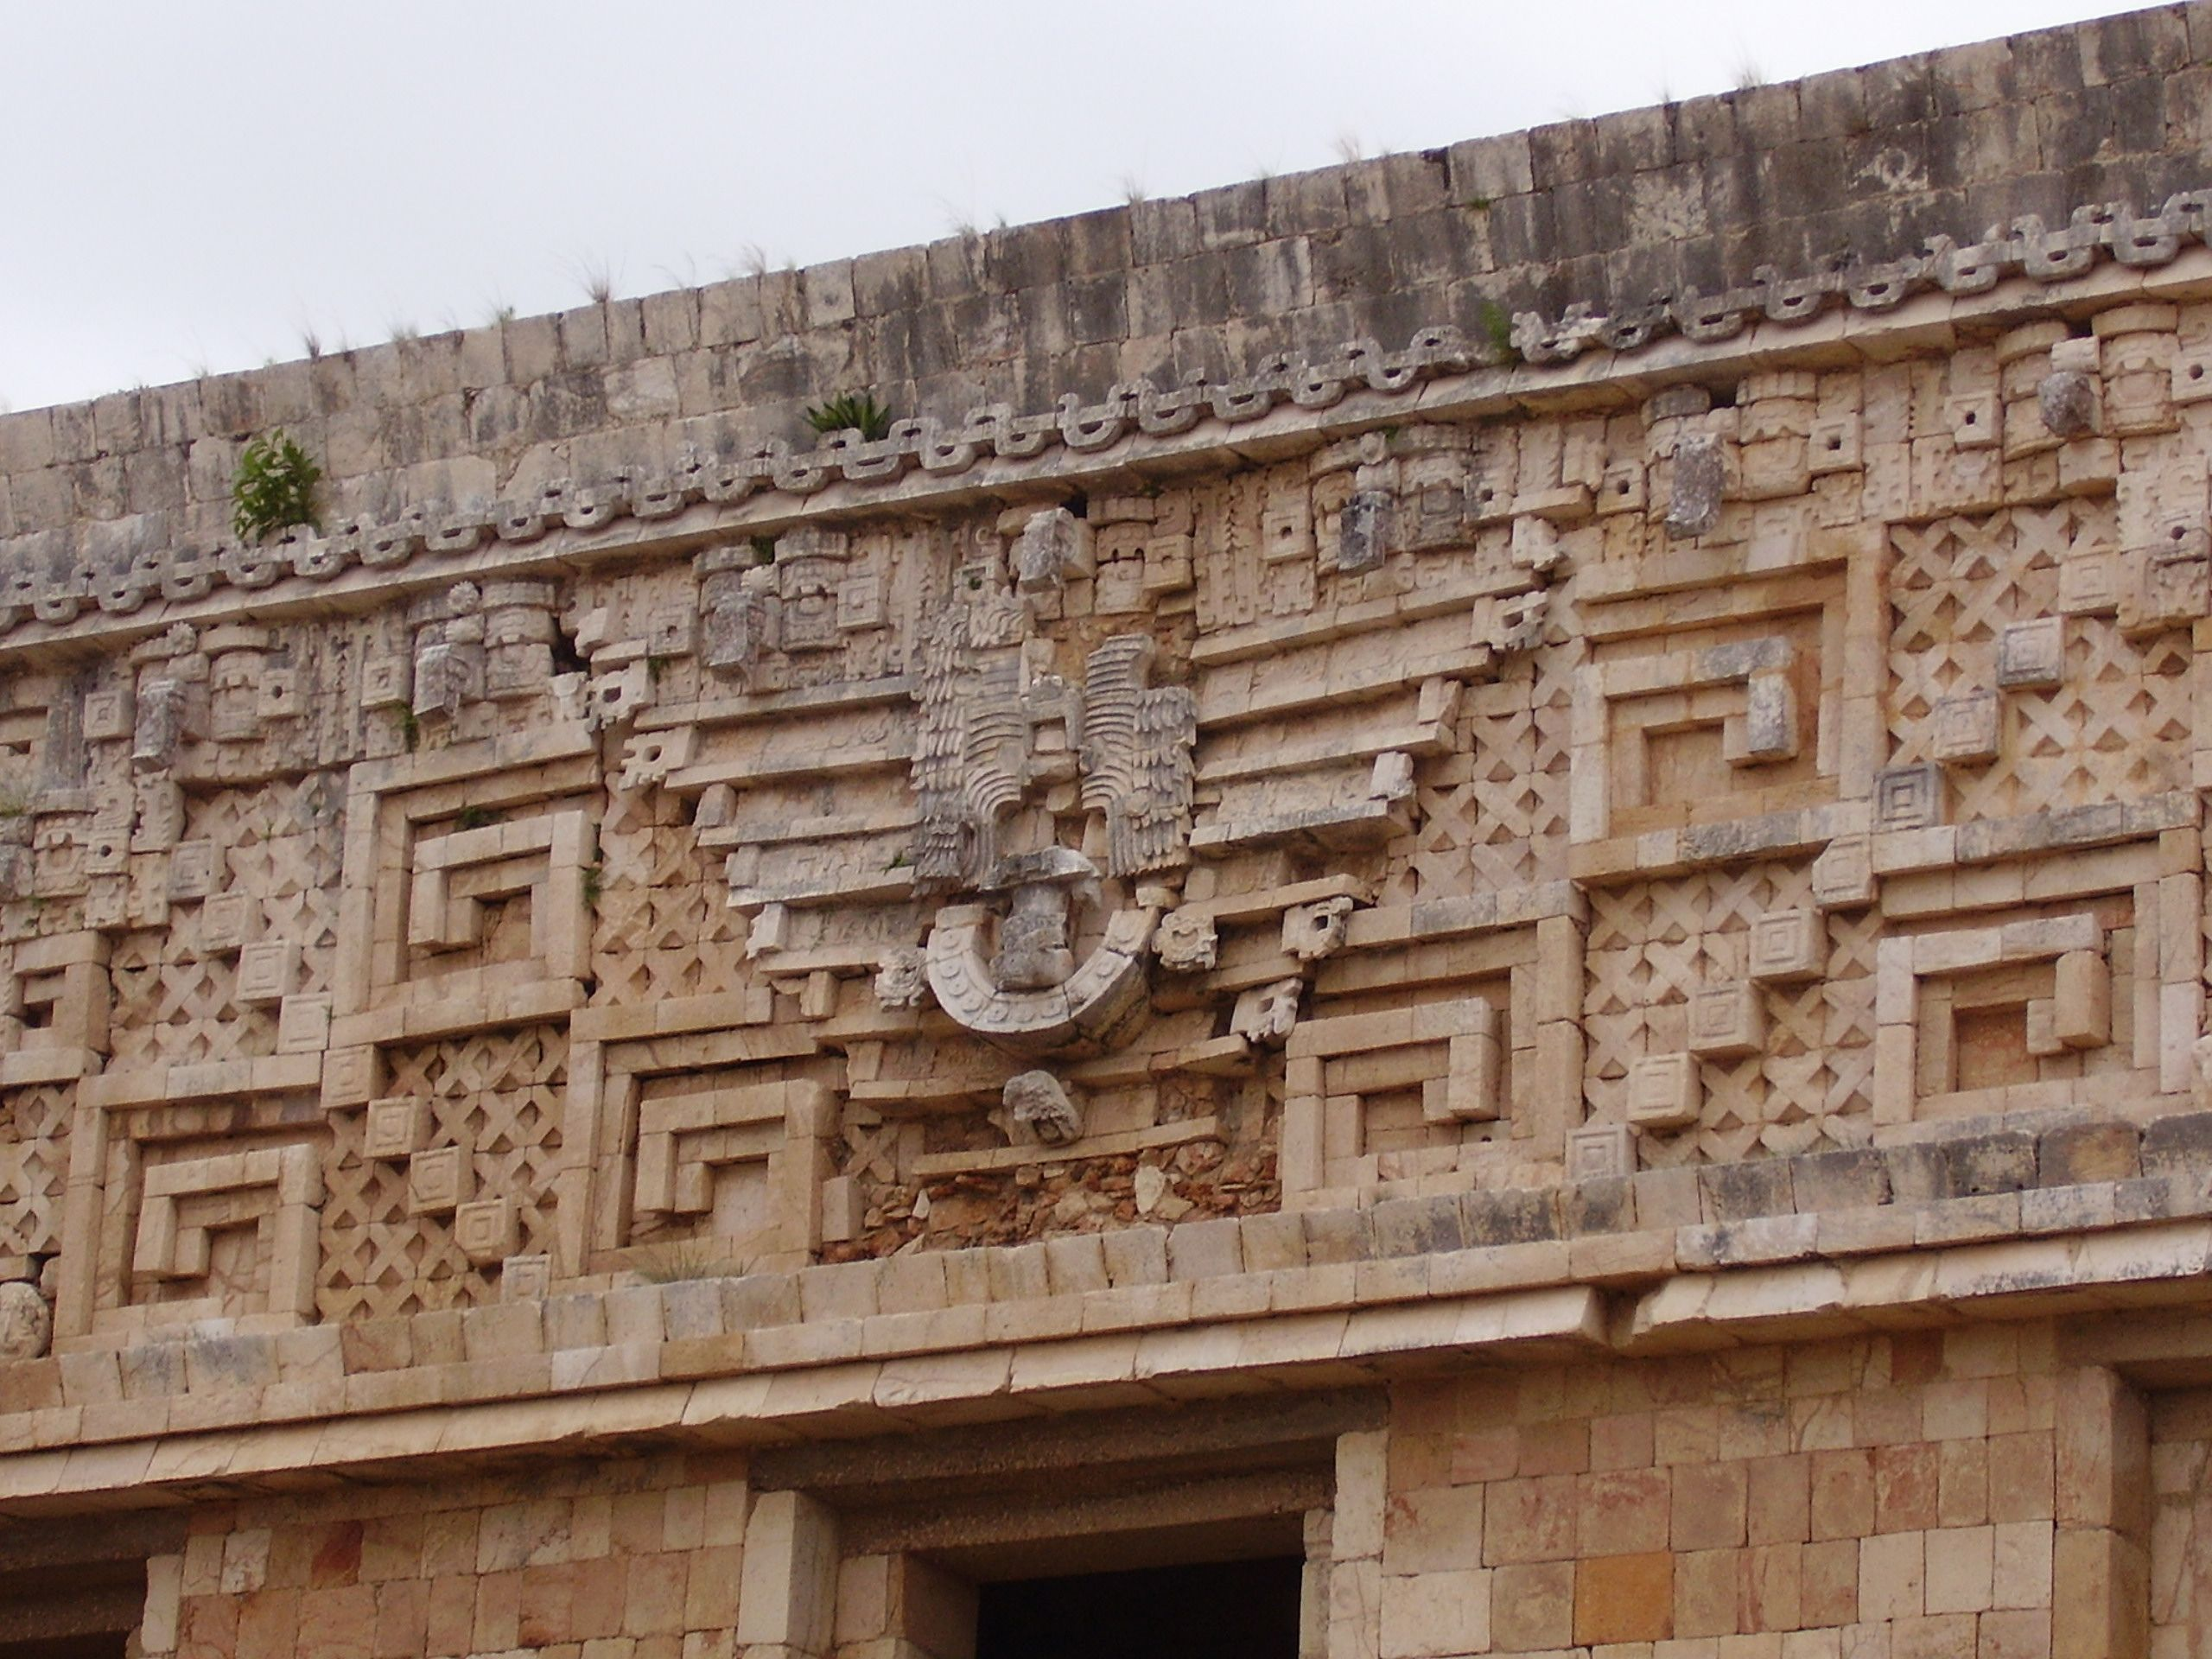 uxmal temple-pyramid, detail | pyramids (egyptian and south